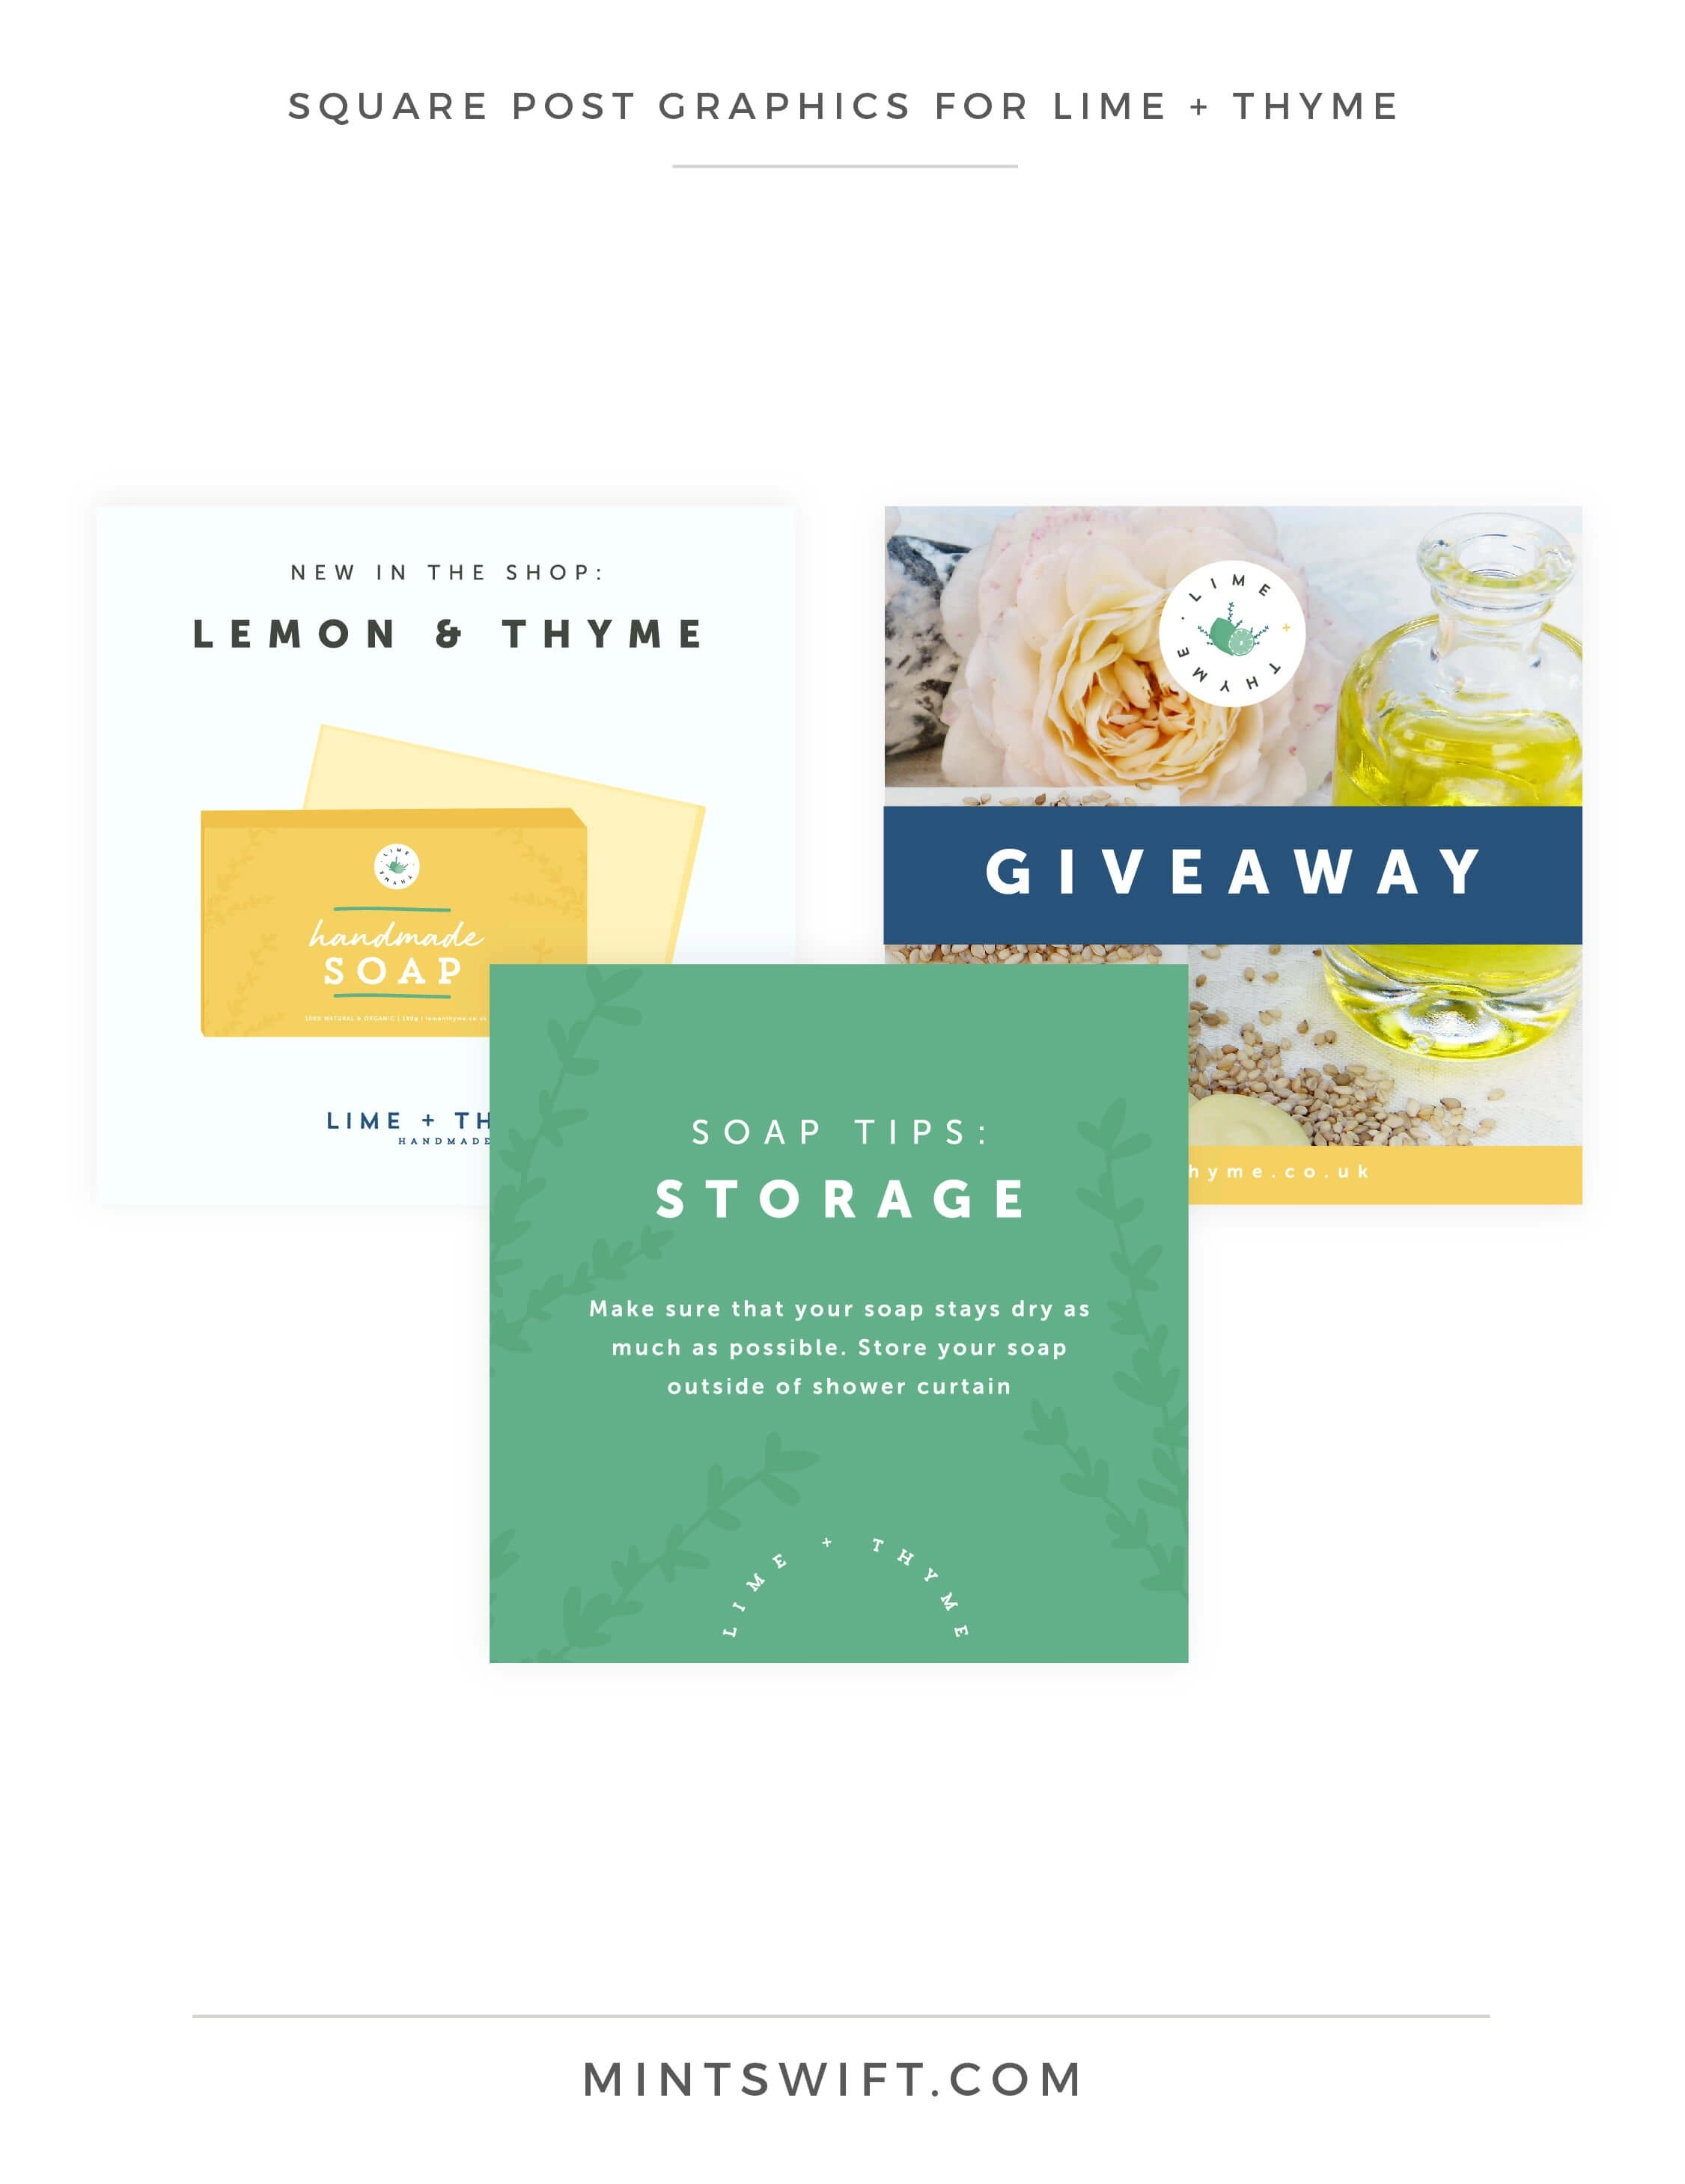 Lime + Thyme - Square Post Graphics - Brand & Website Design - MintSwift